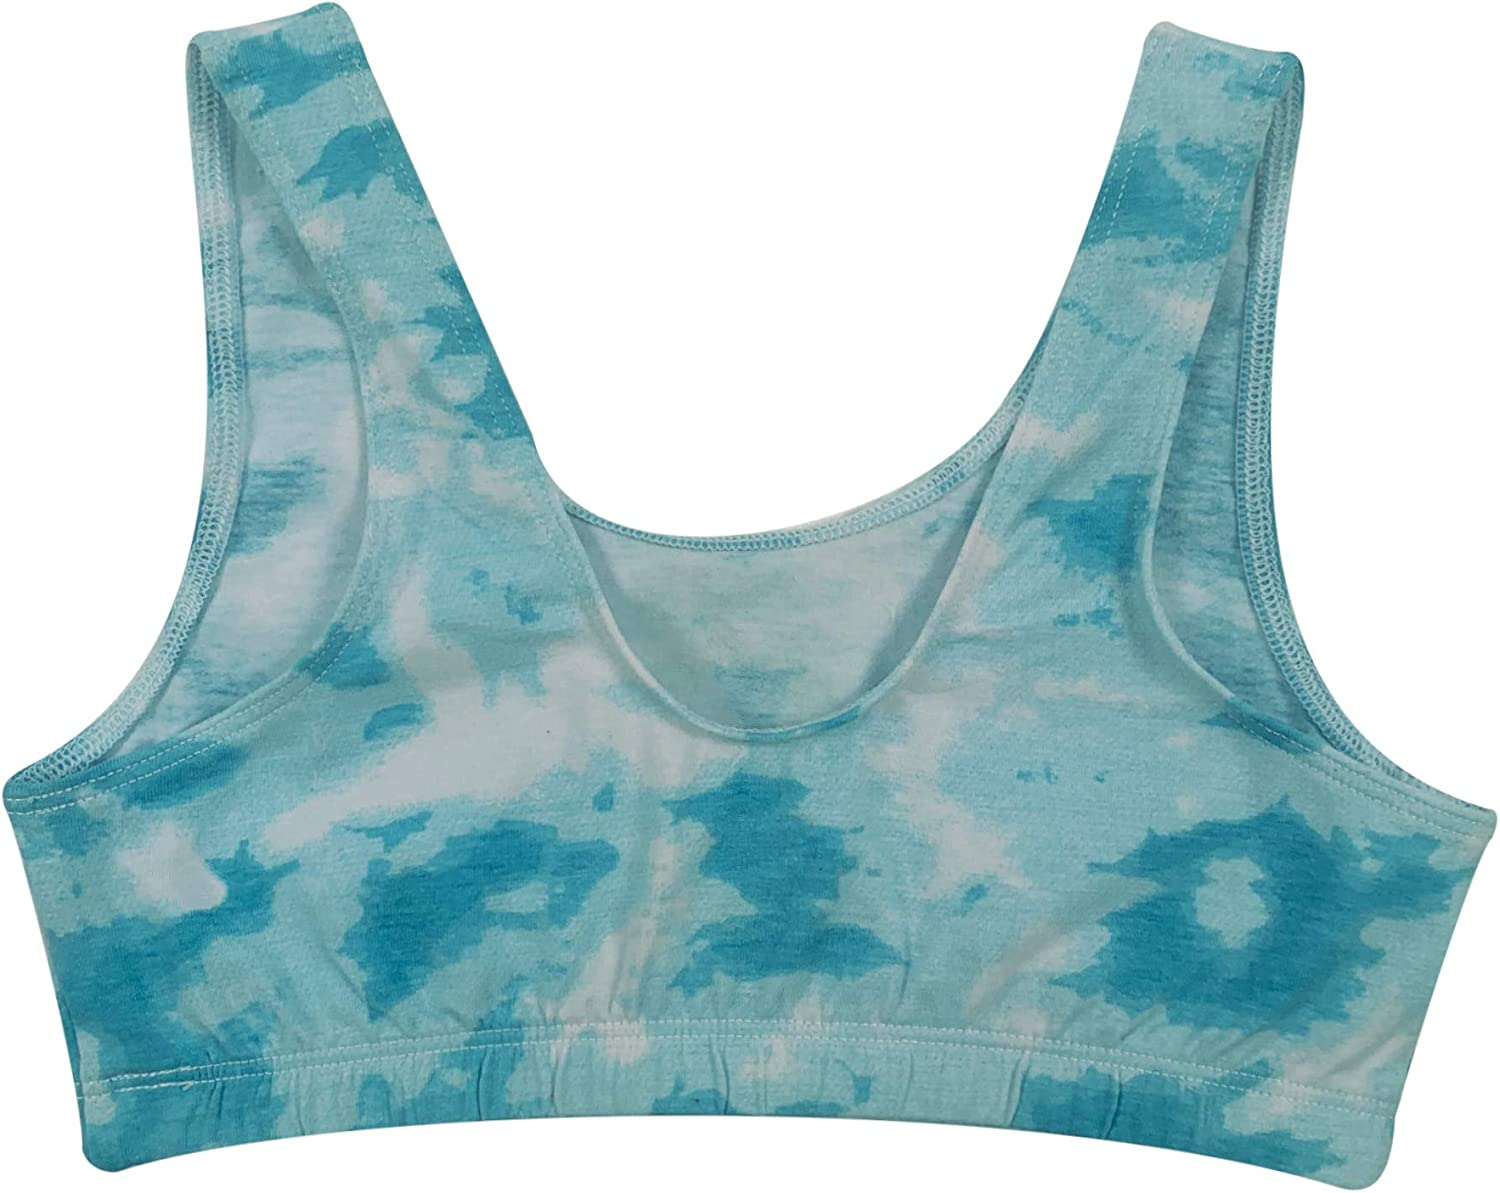 The Popular Store Girl's Cotton Active Tie Dye Sports Bra - 3 Pack